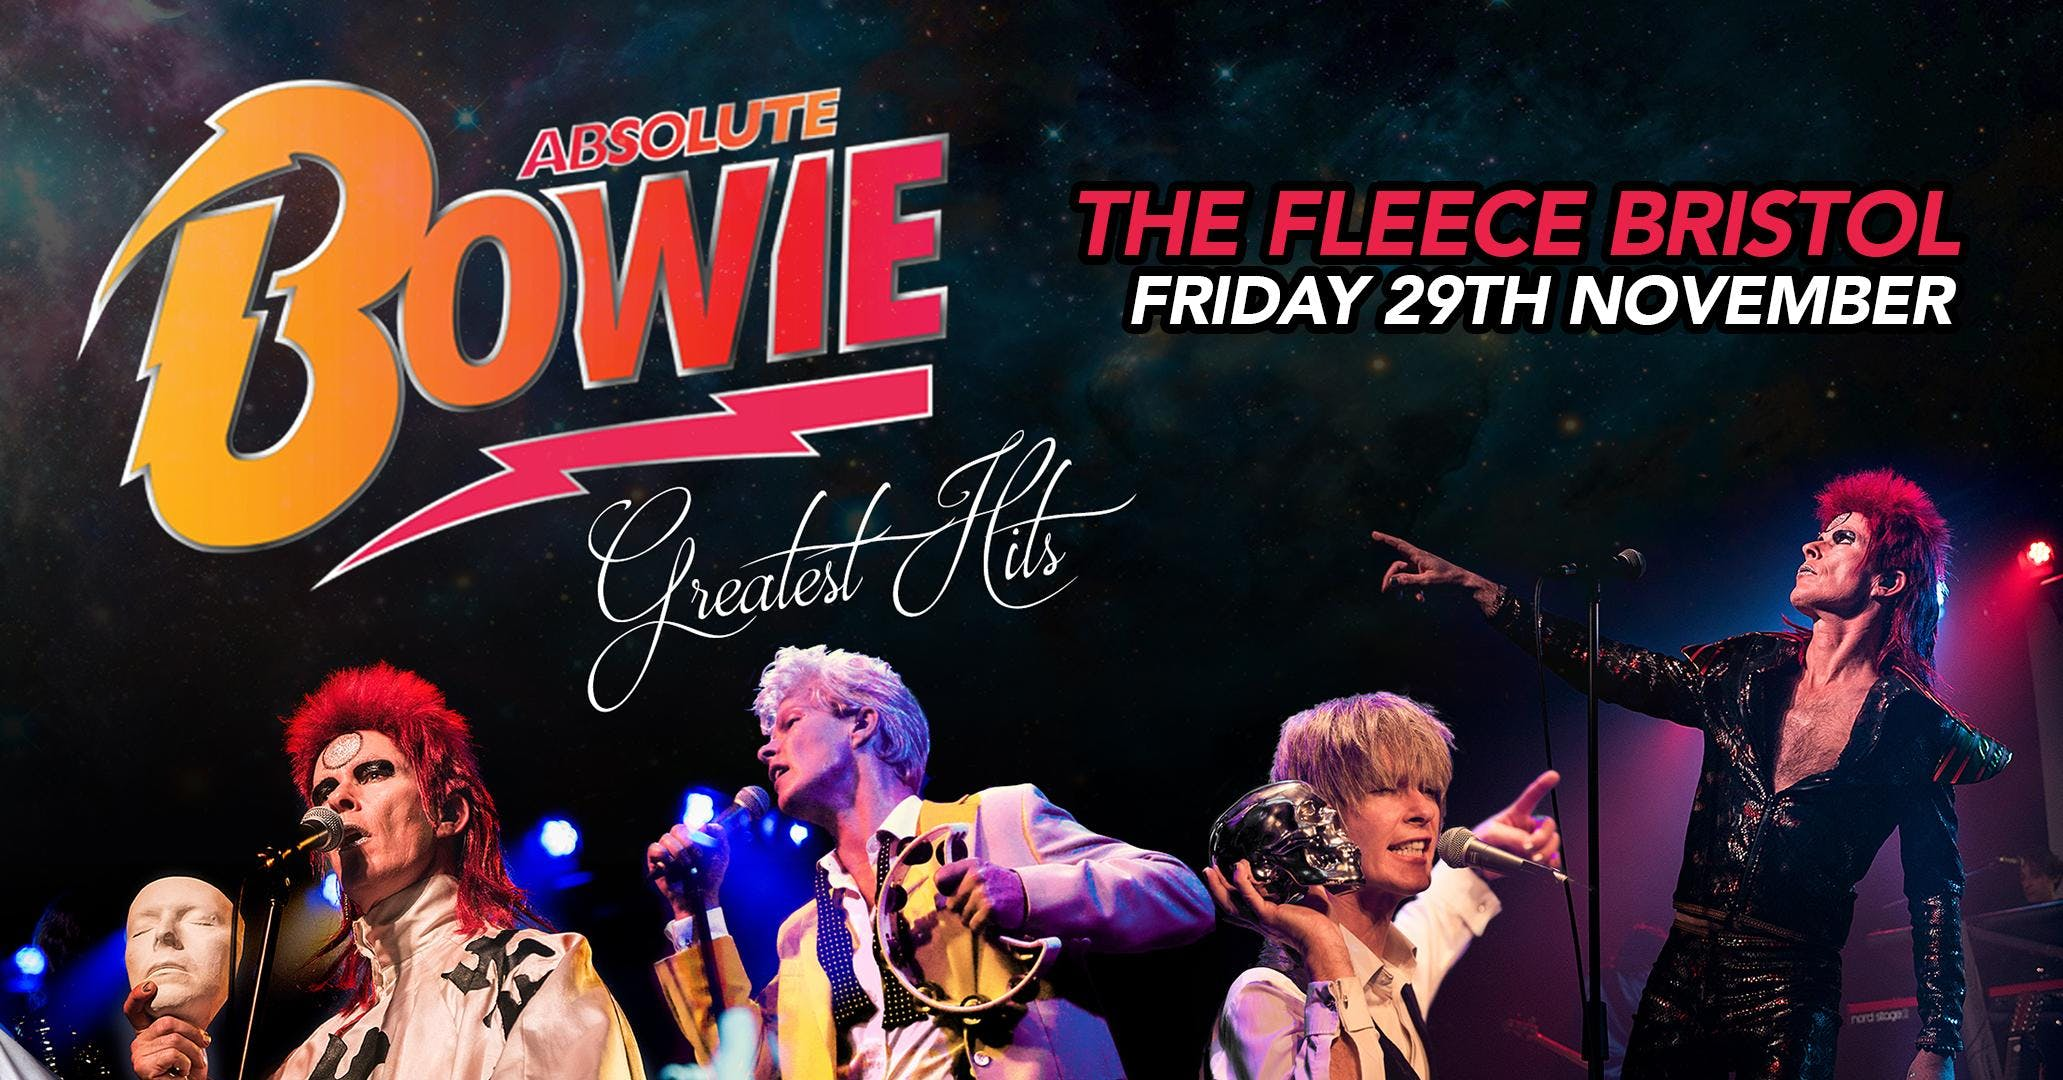 Absolute Bowie Greatest Hits Show